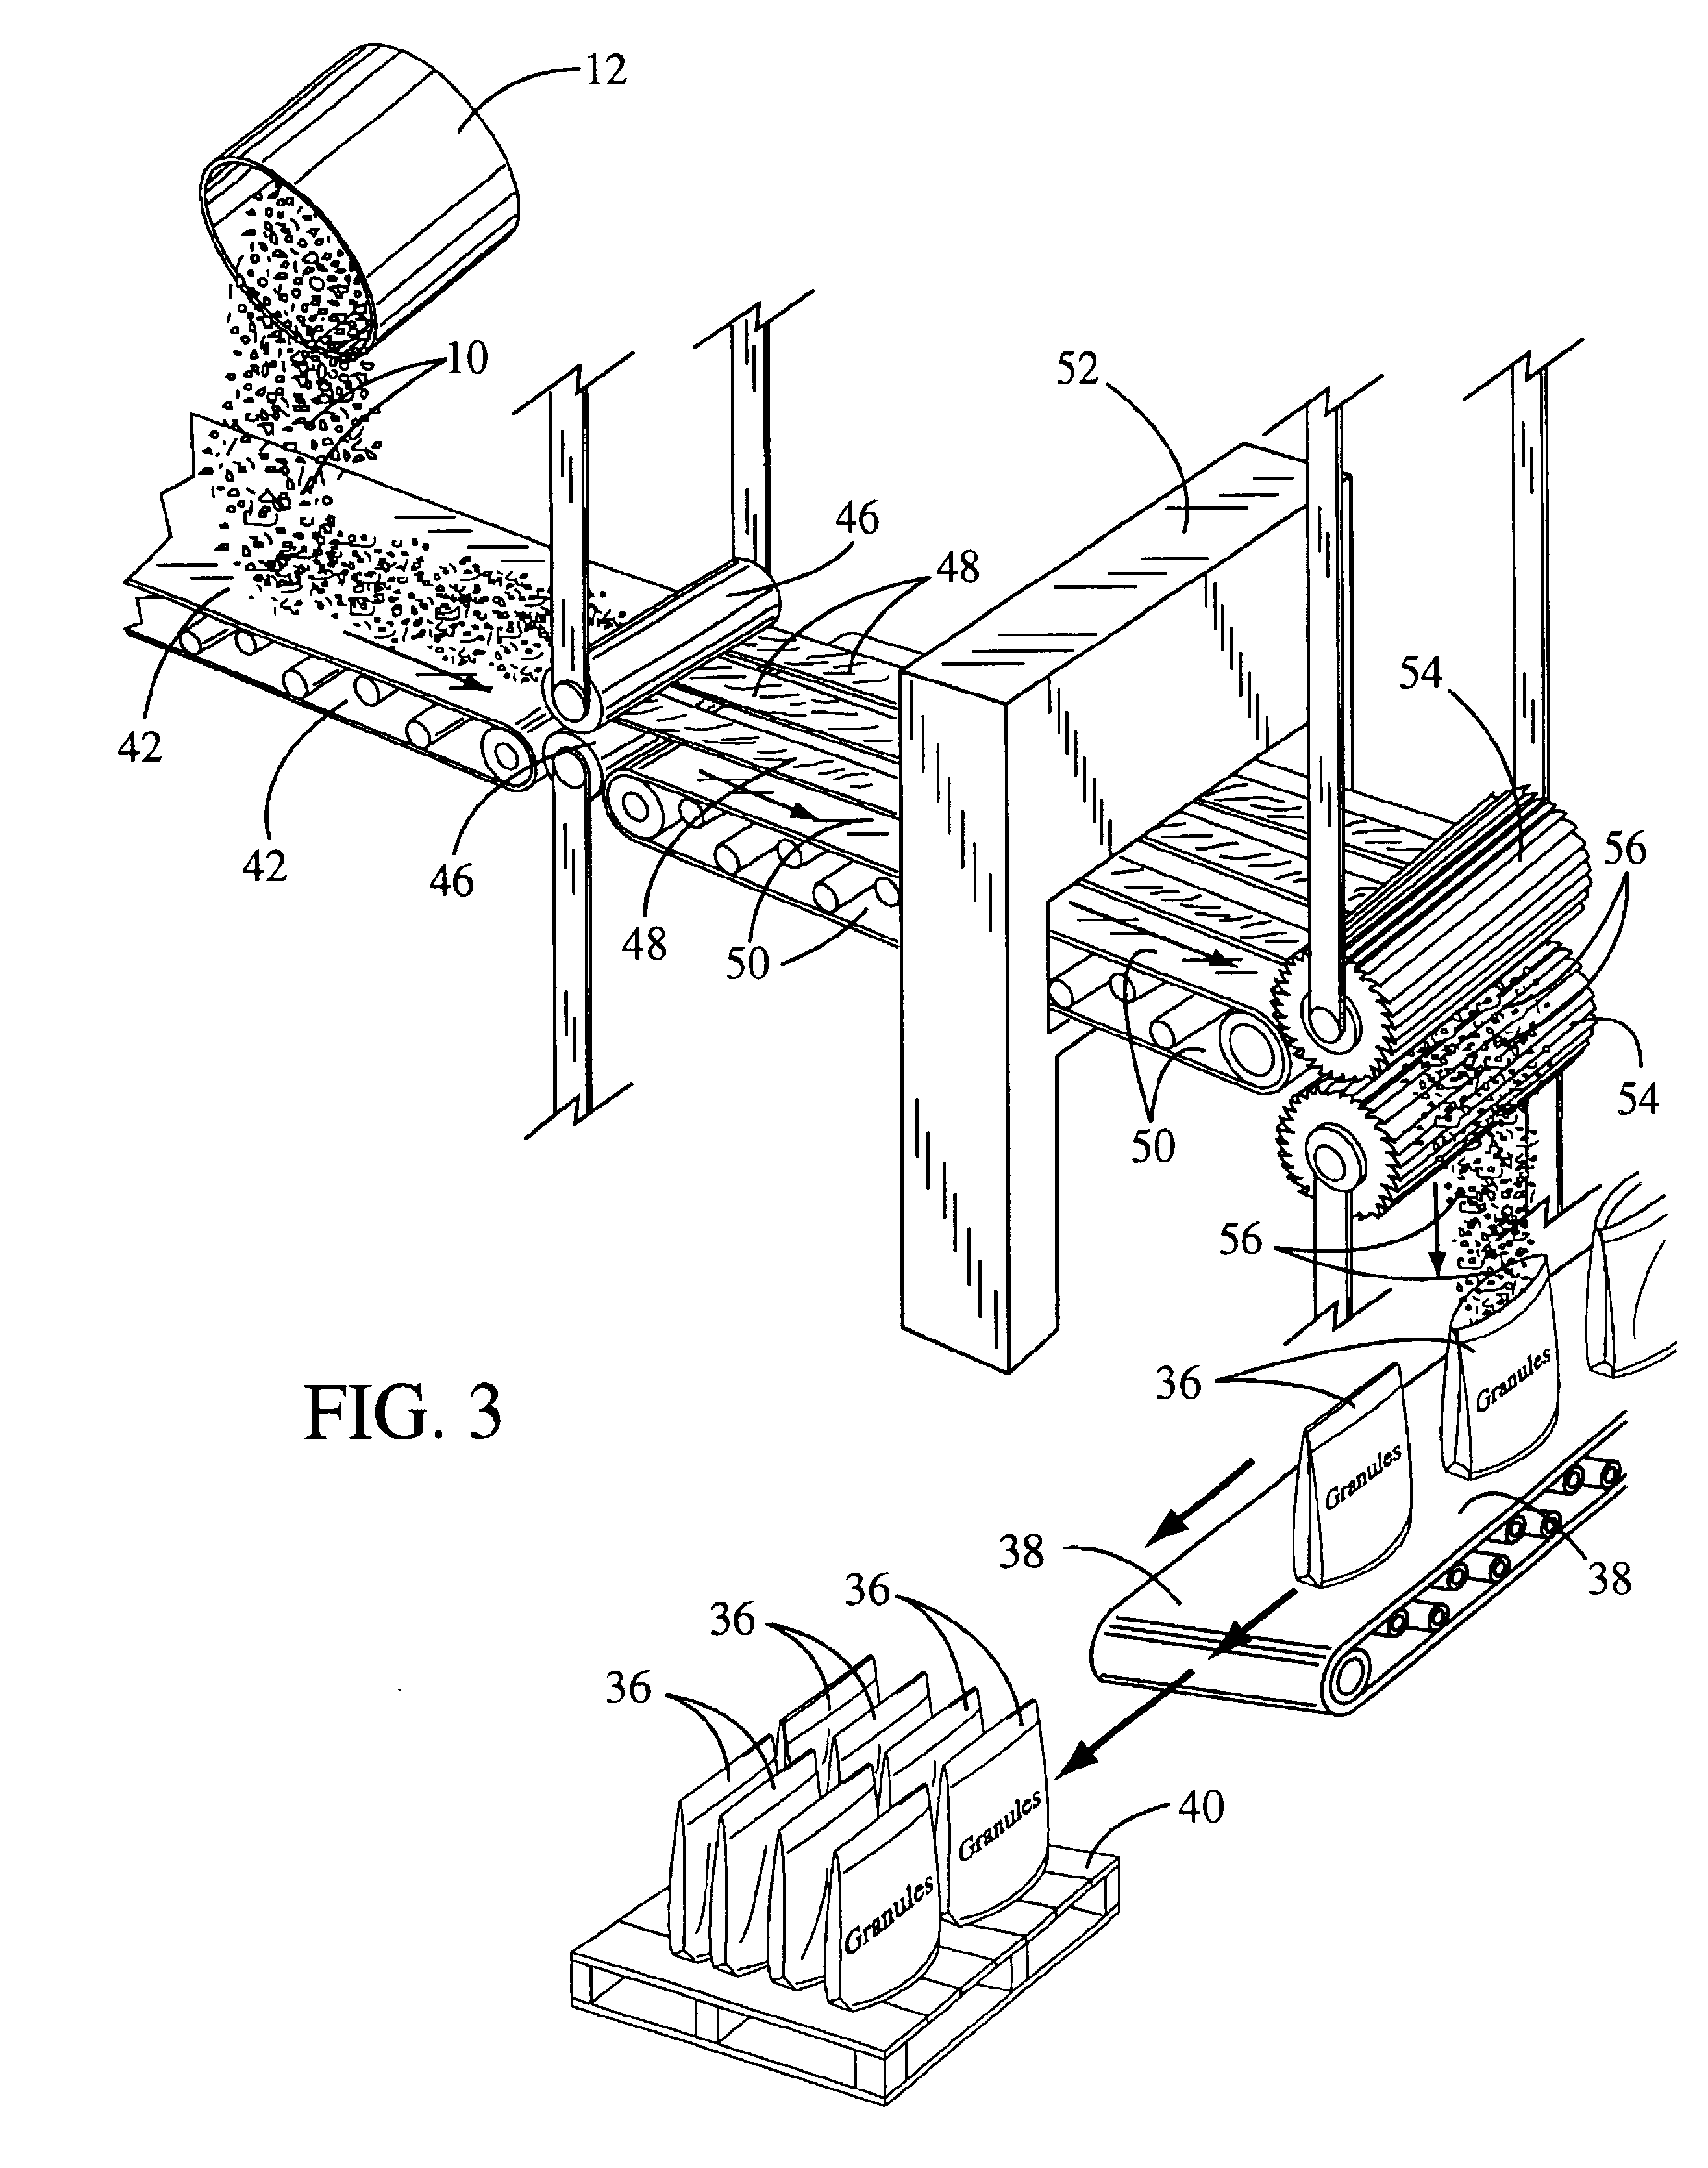 Patent Us6863027 Method Of Making Coconut Coir Pitch Cat